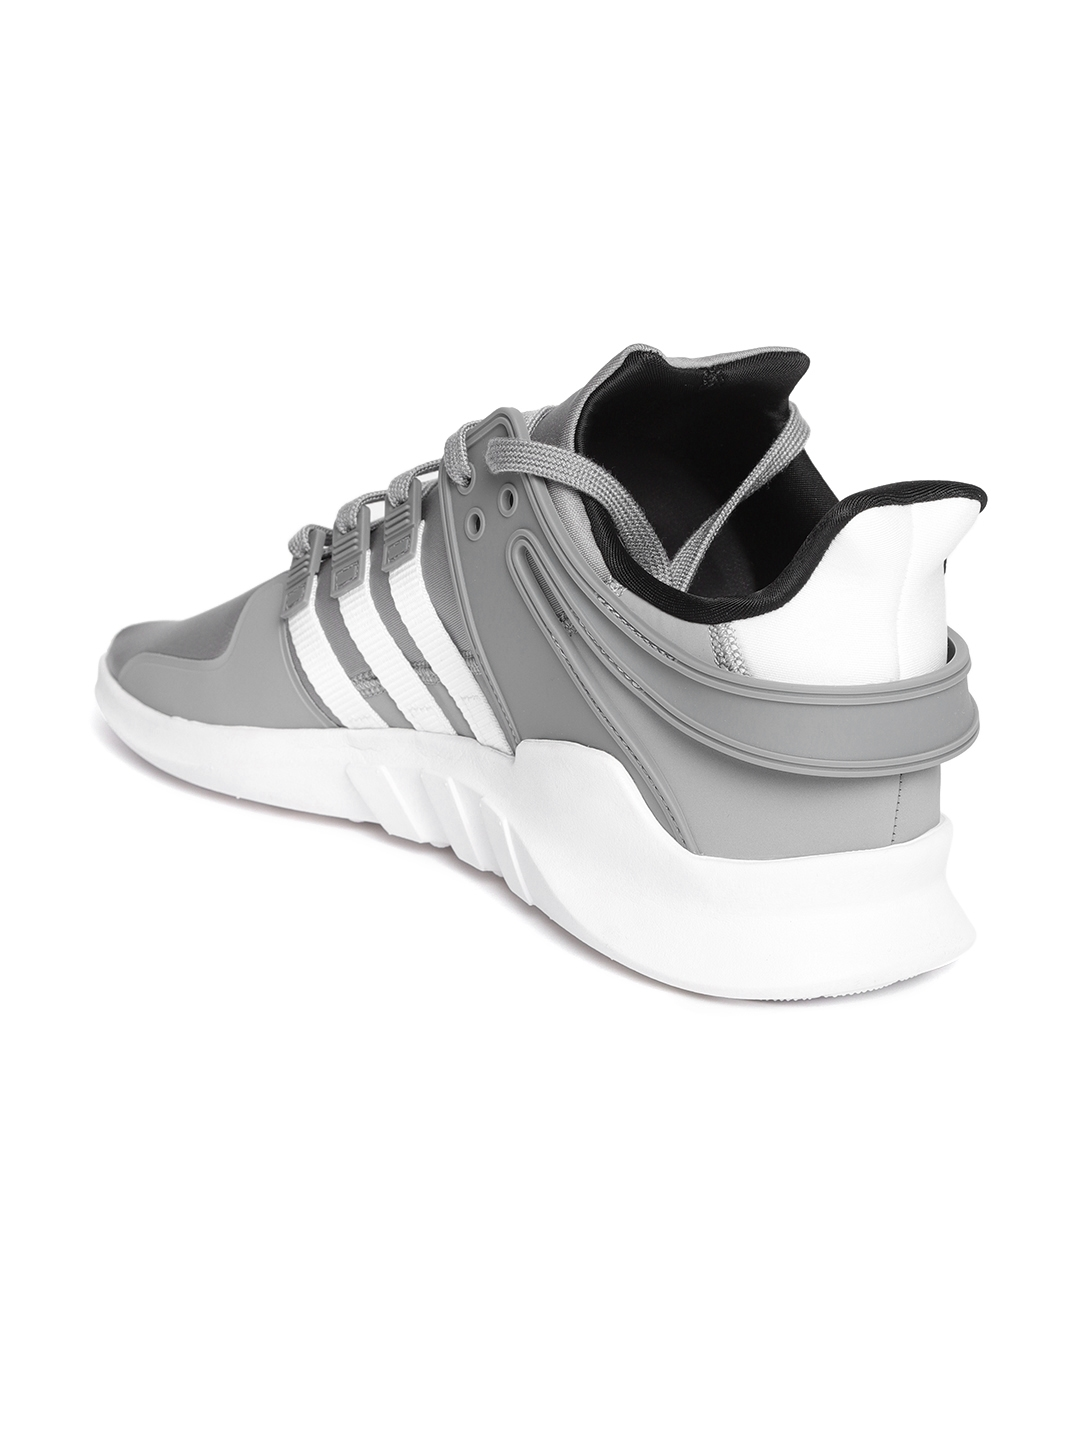 fff1b92f58ec Buy ADIDAS Originals Men Grey EQT Support ADV Sneakers - Casual ...